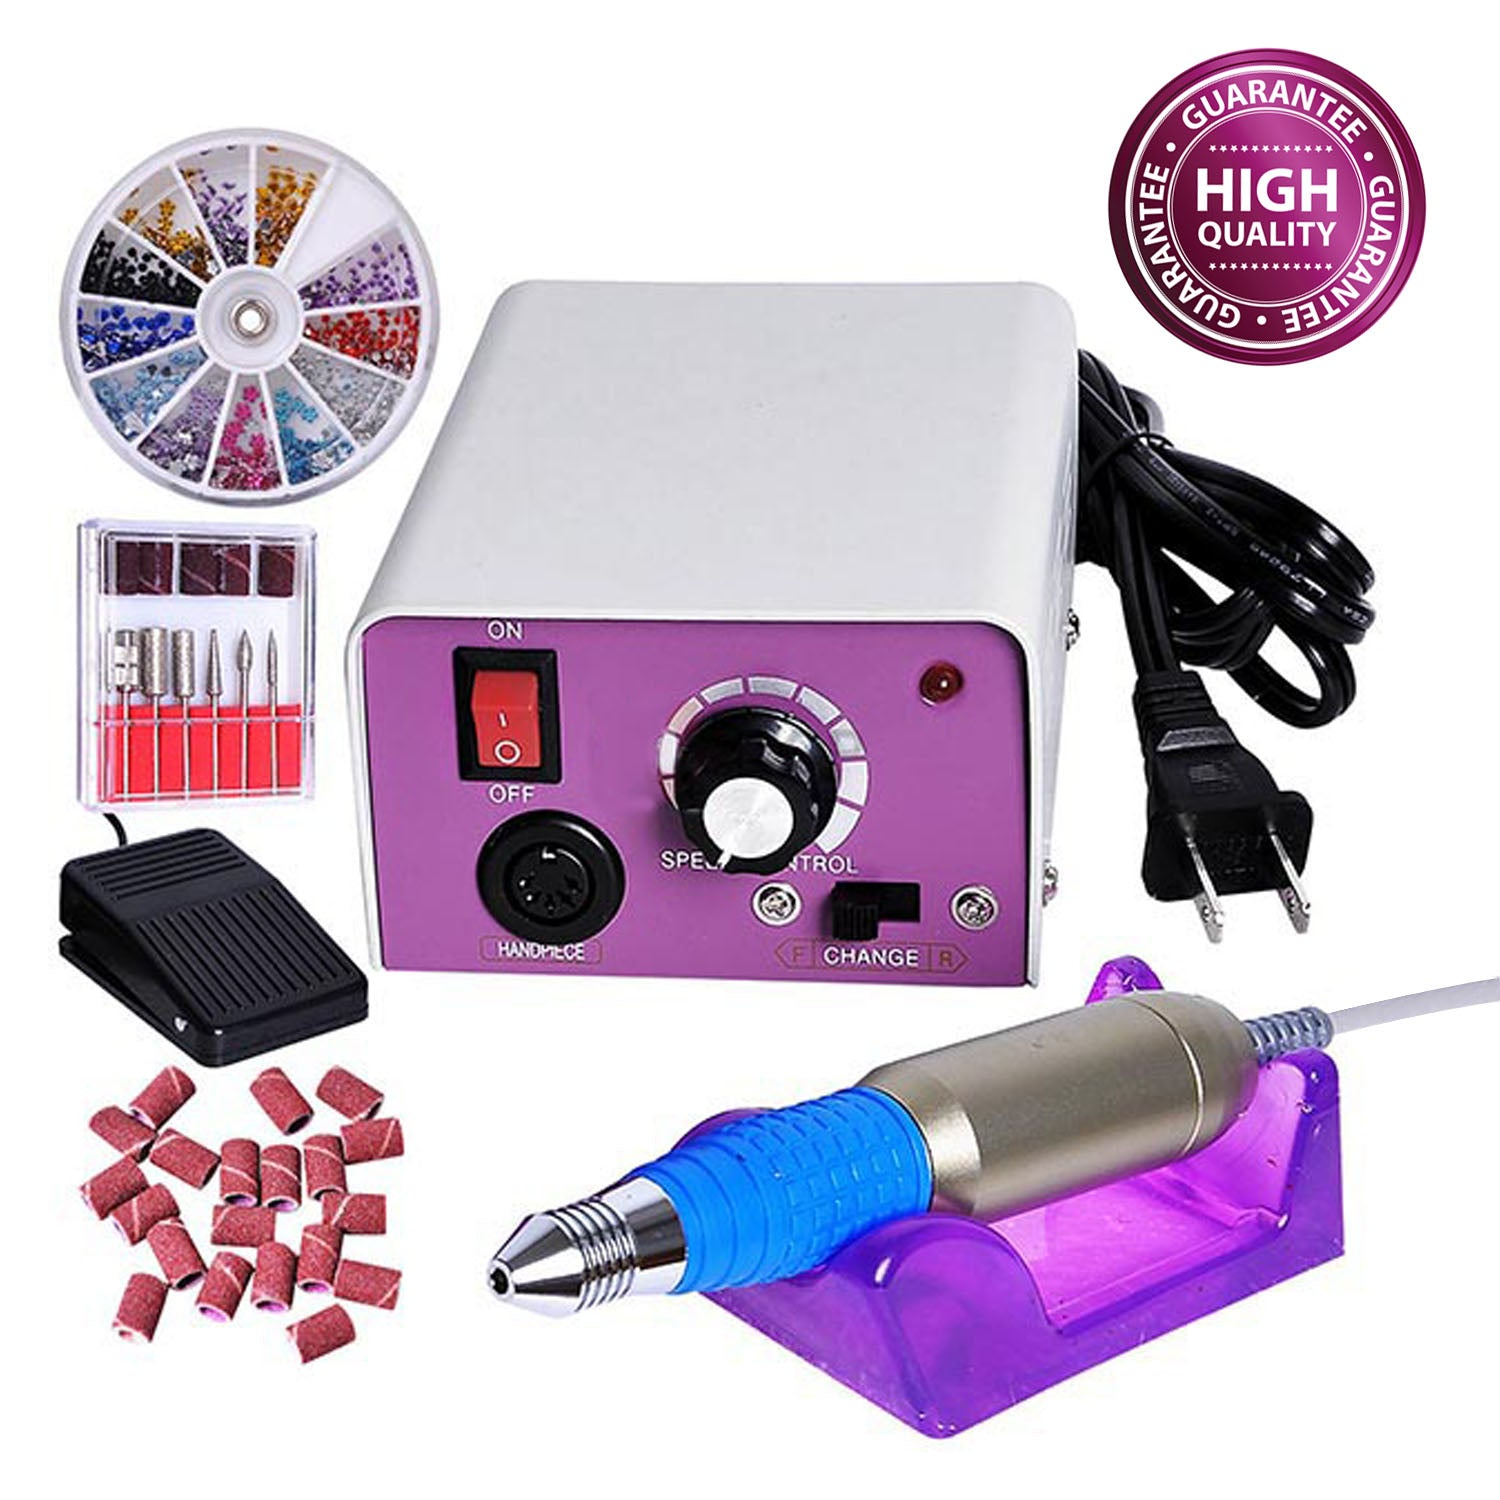 Electronic Nail File Machine Kit | Koval Inc.